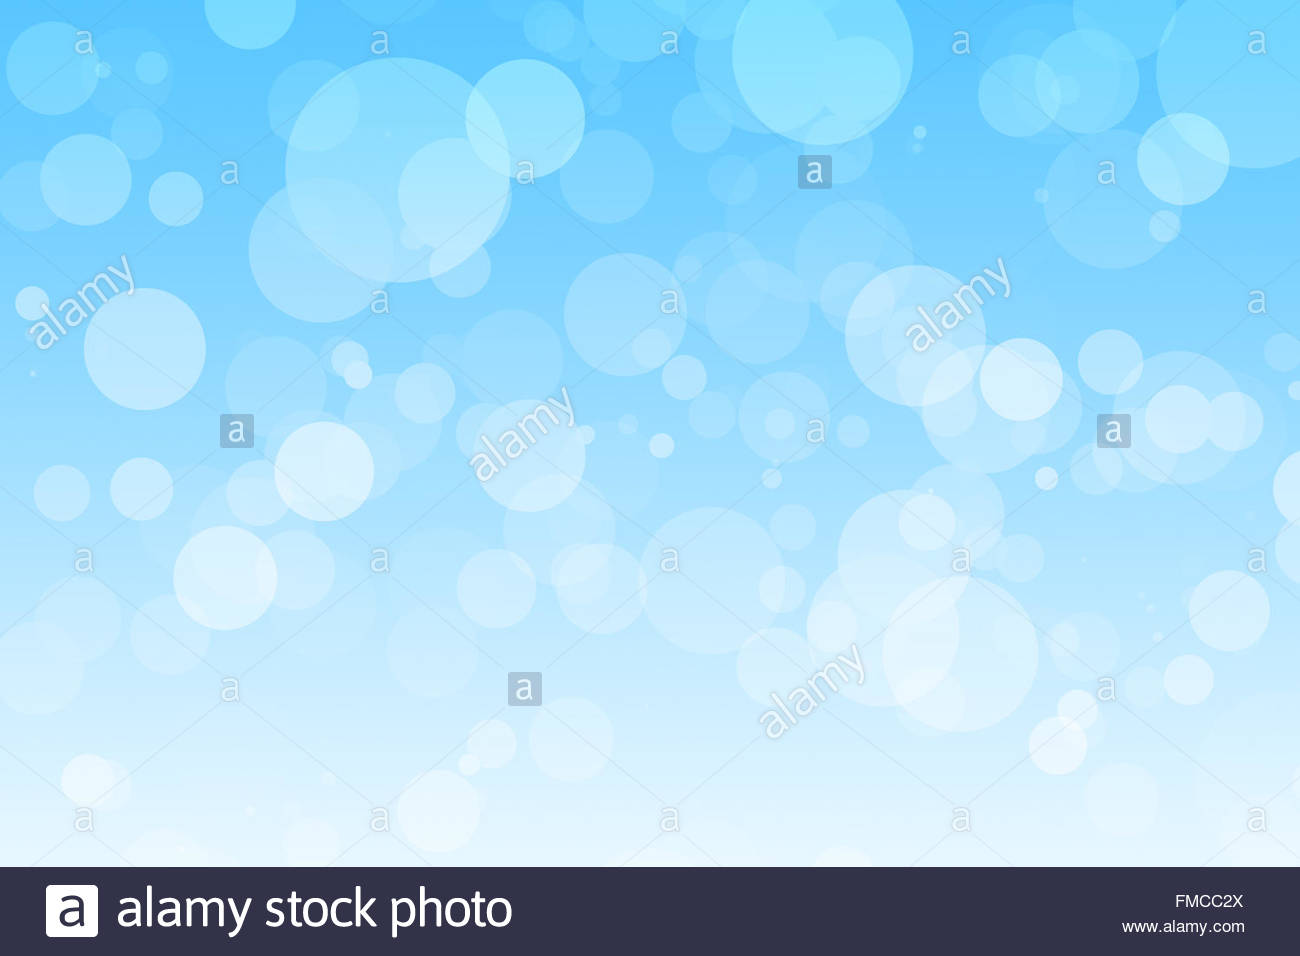 Light blue background with soft white bubbles floating around 1300x956